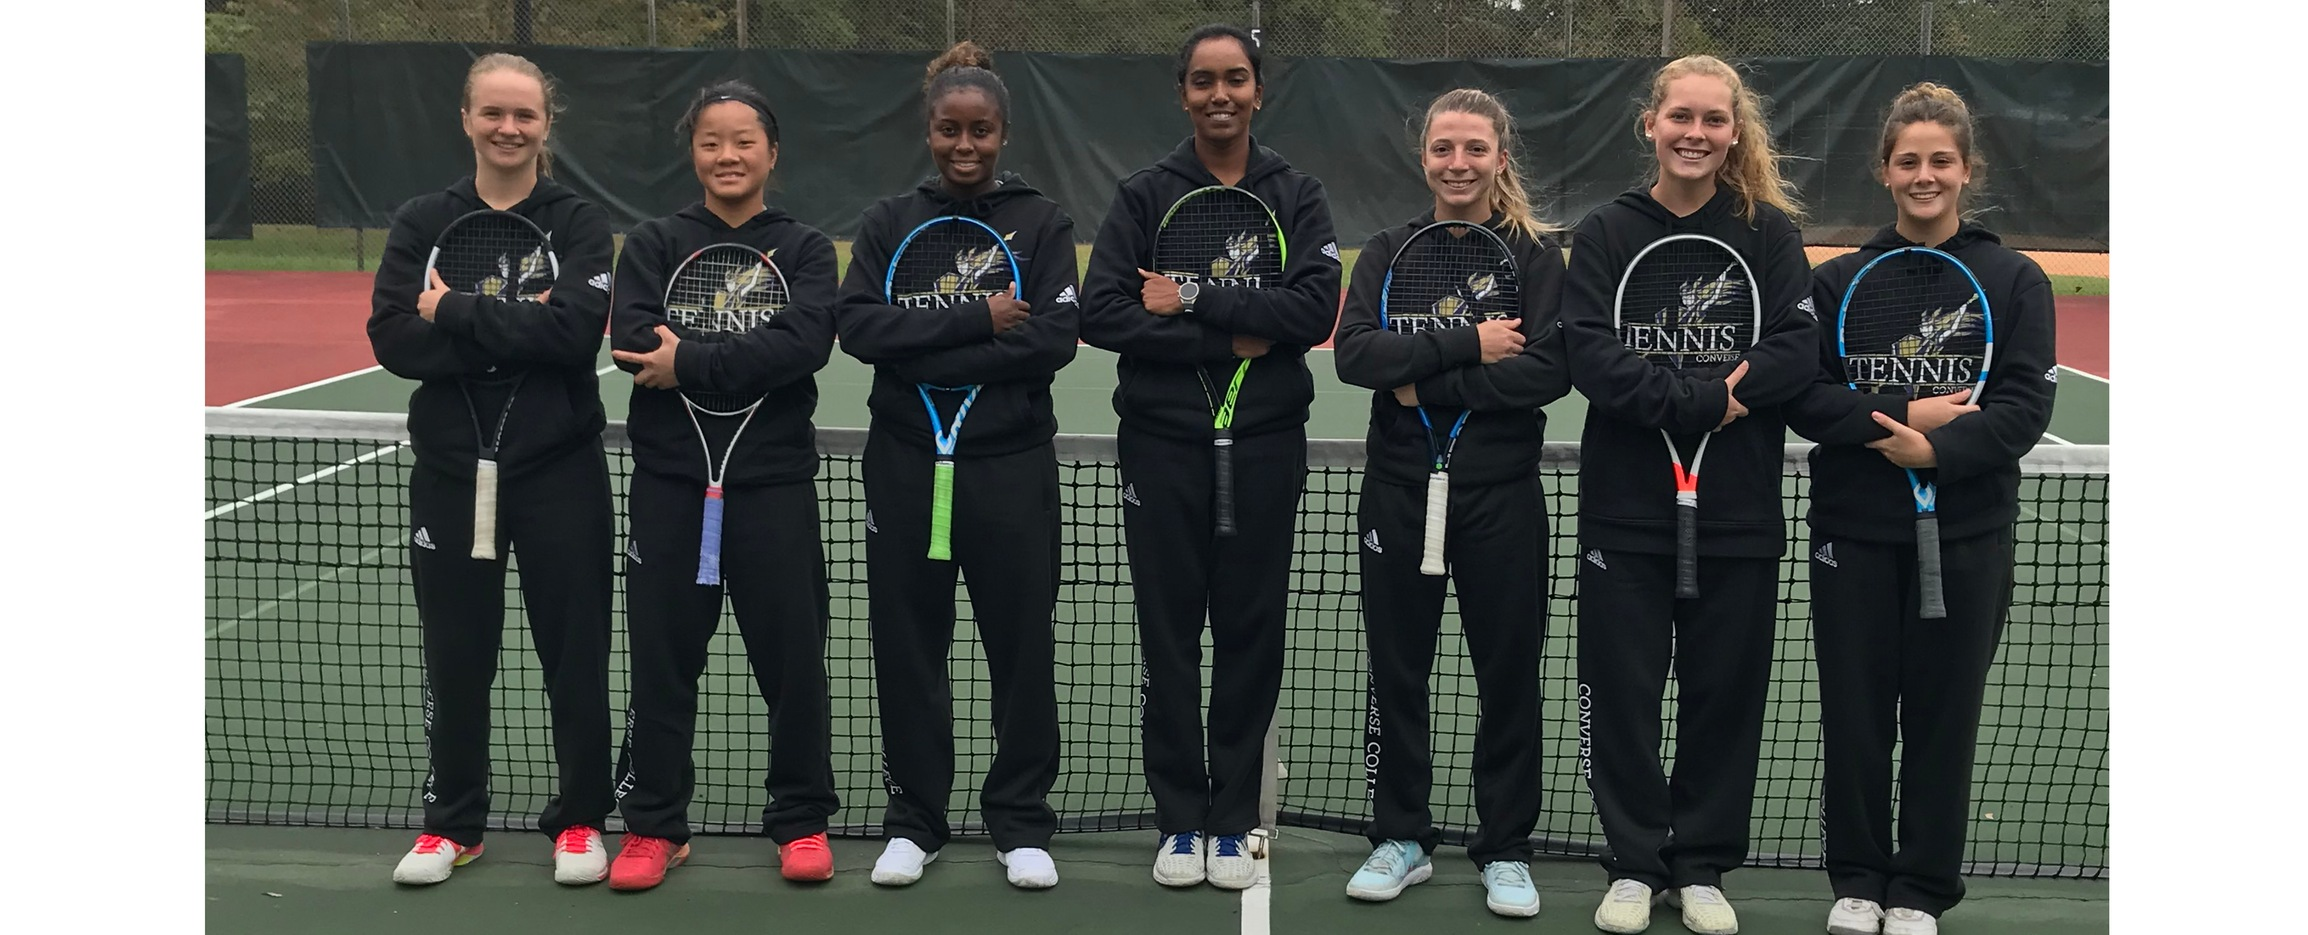 Tennis Edged By Charleston (W. Va.) During Opening Day of Best Western Duals